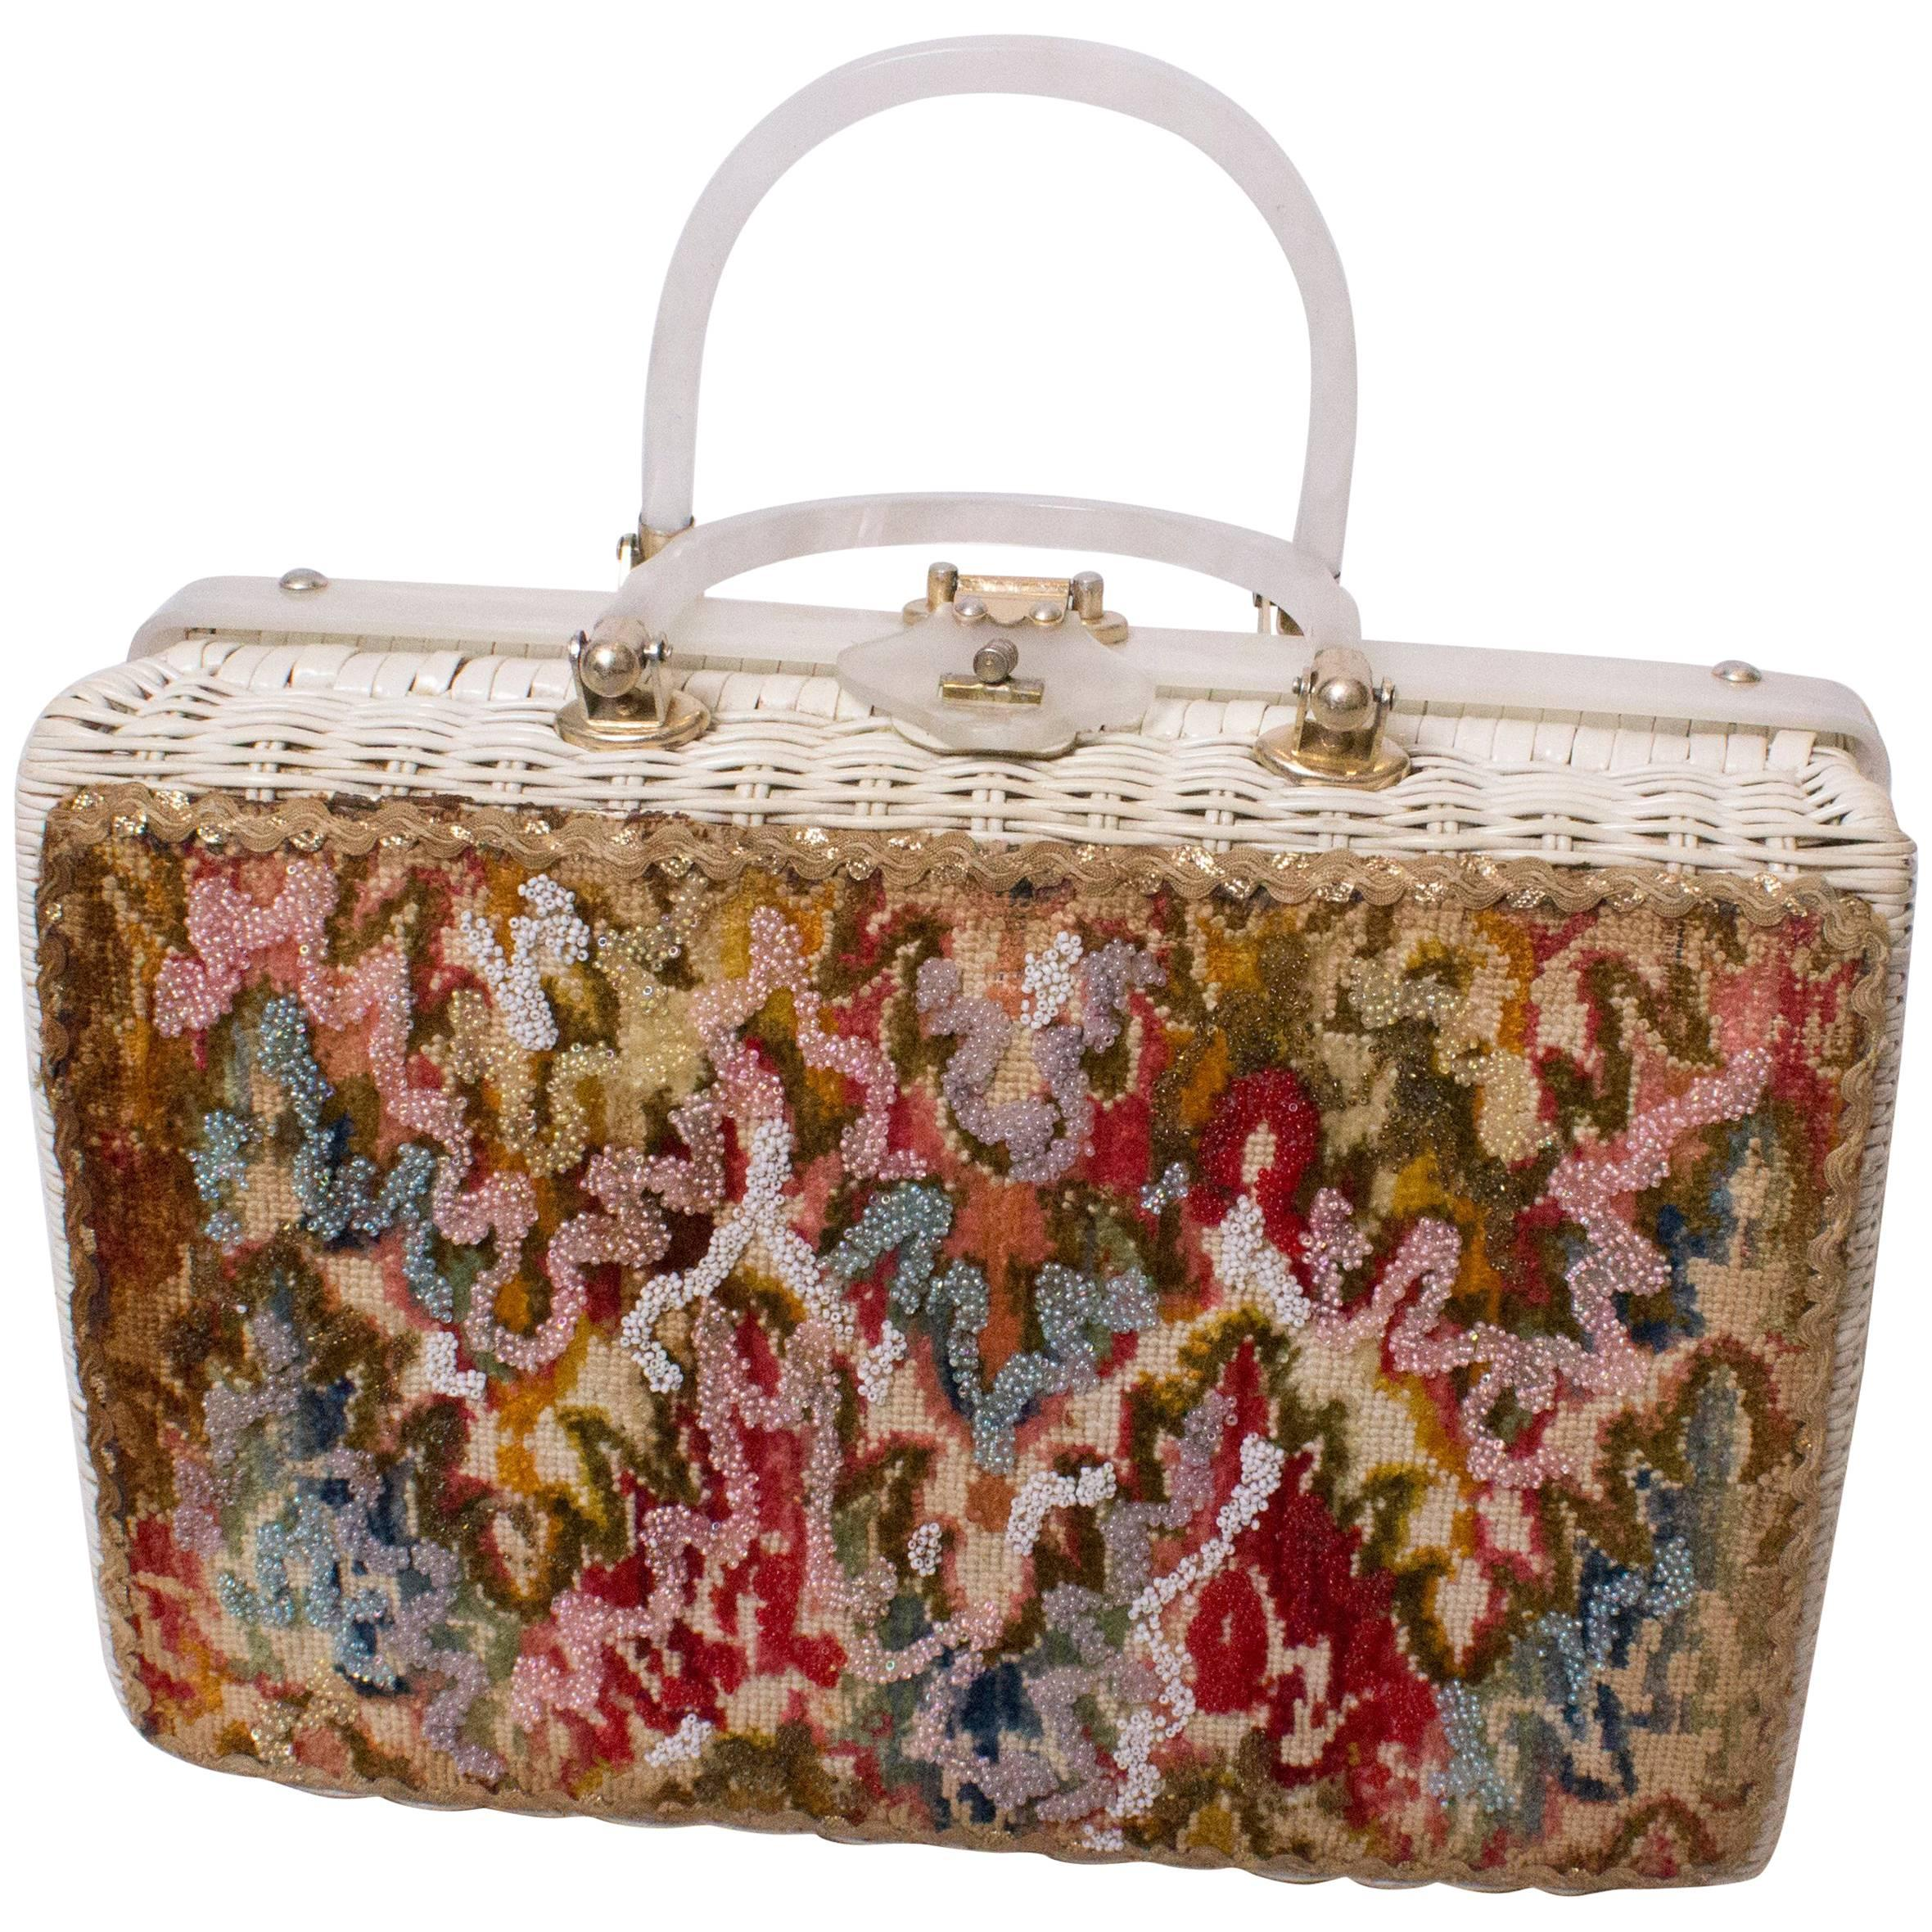 1stdibs 1950s Beaded & Wicker Floral Basket Novelty Bag 5nY8EqZm